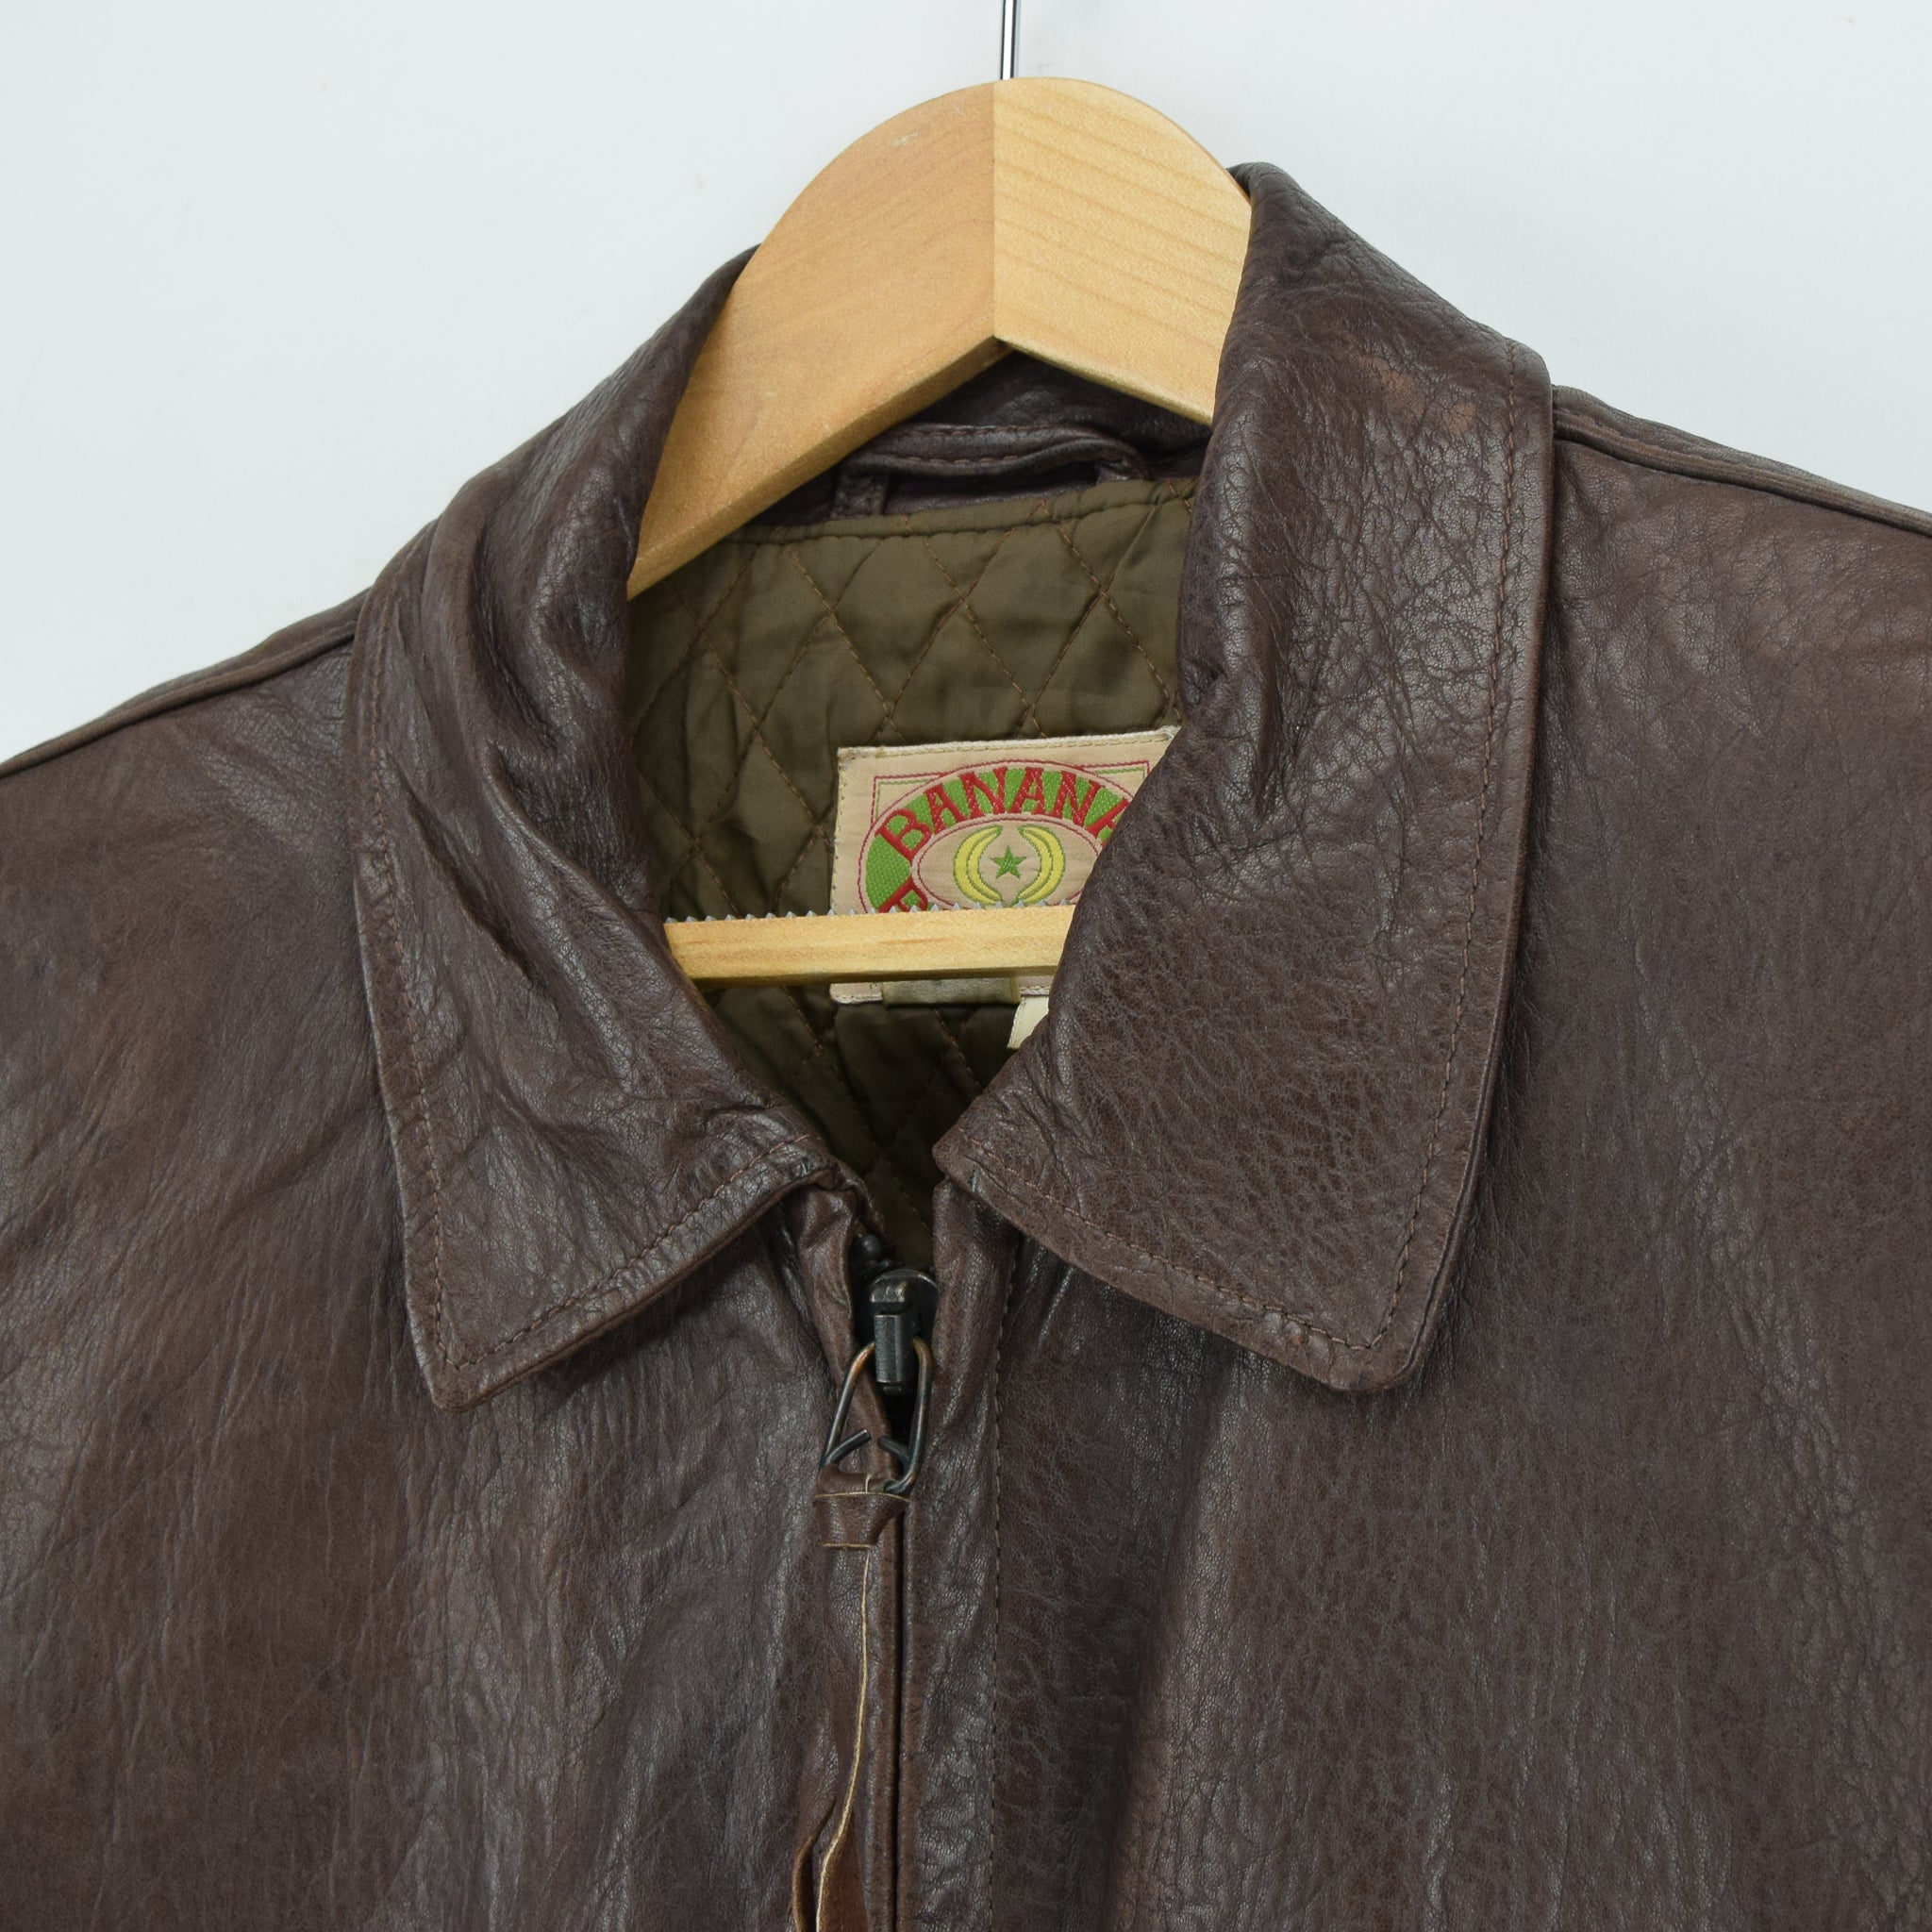 Vintage Banana Republic Brown Leather Bomber Biker Style Jacket Made in USA L collar